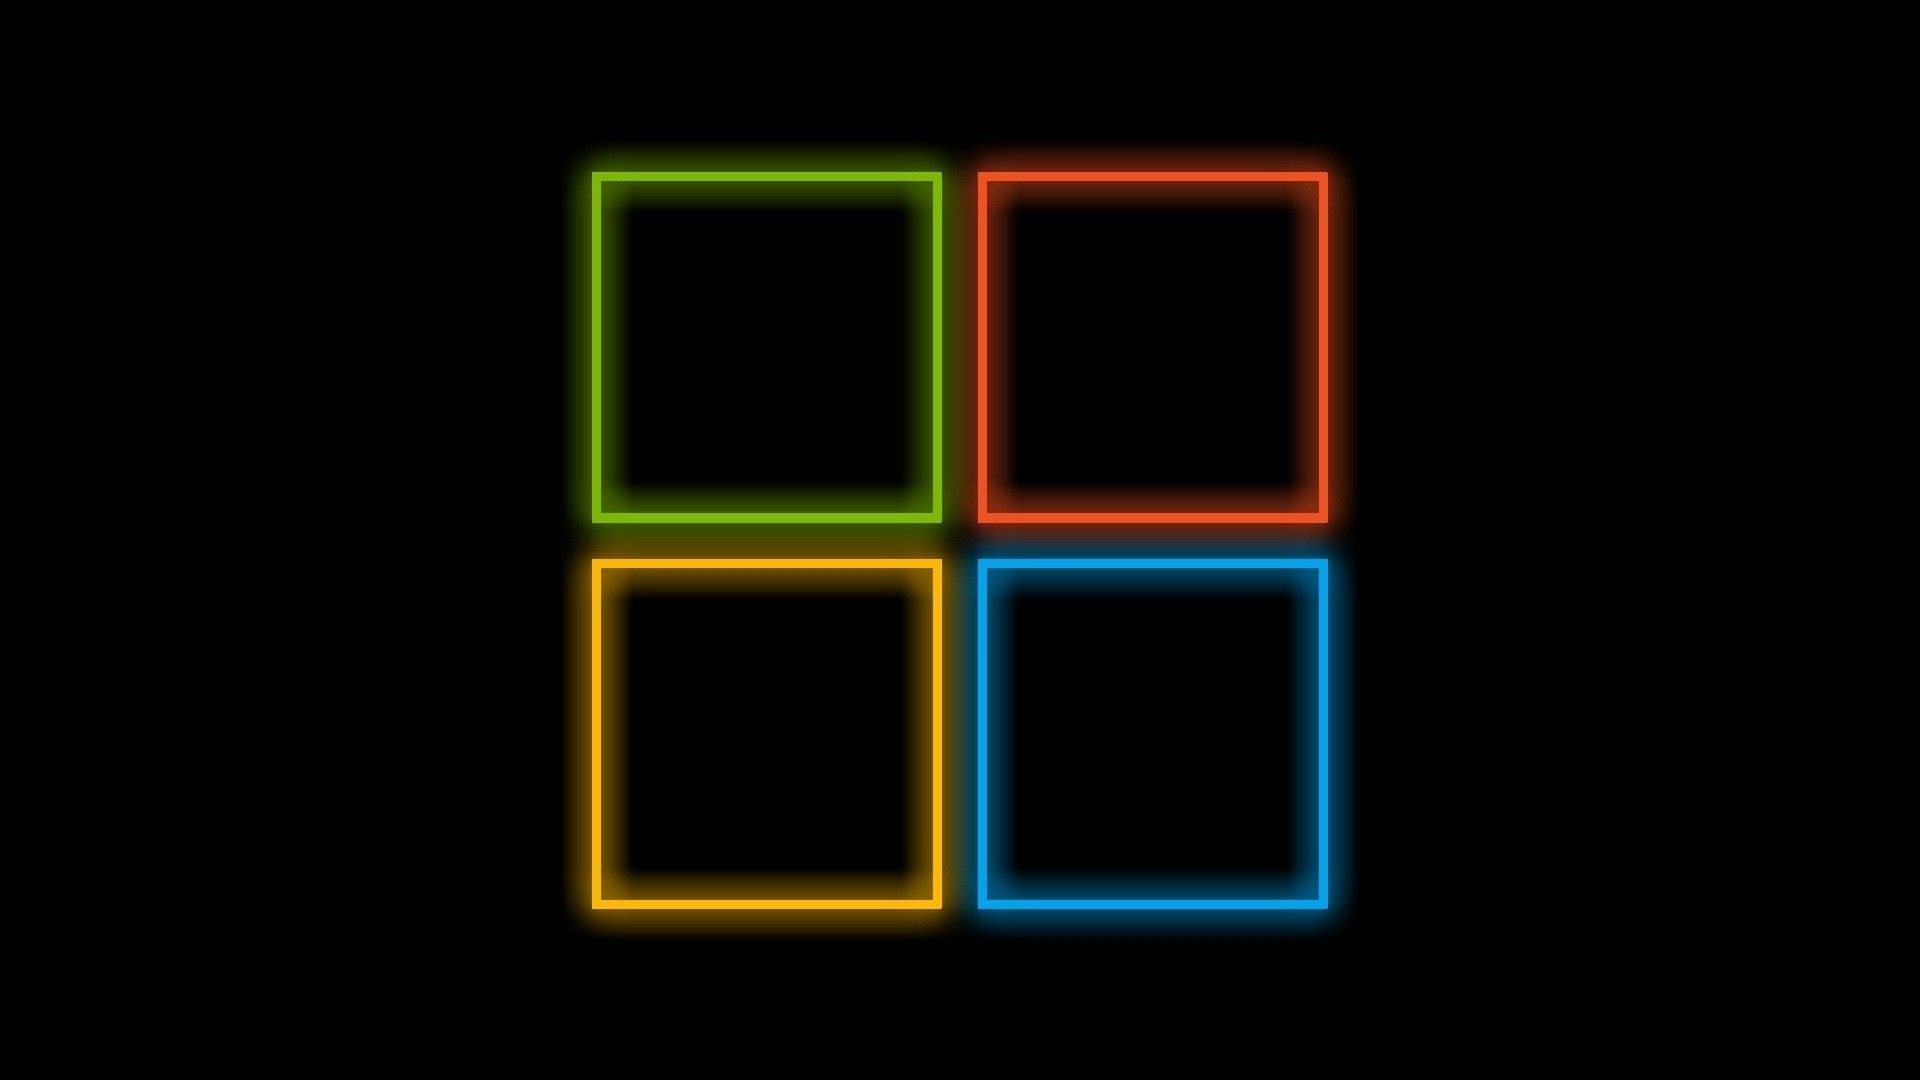 microsoft windows wallpapers by gifteddeviant - photo #40